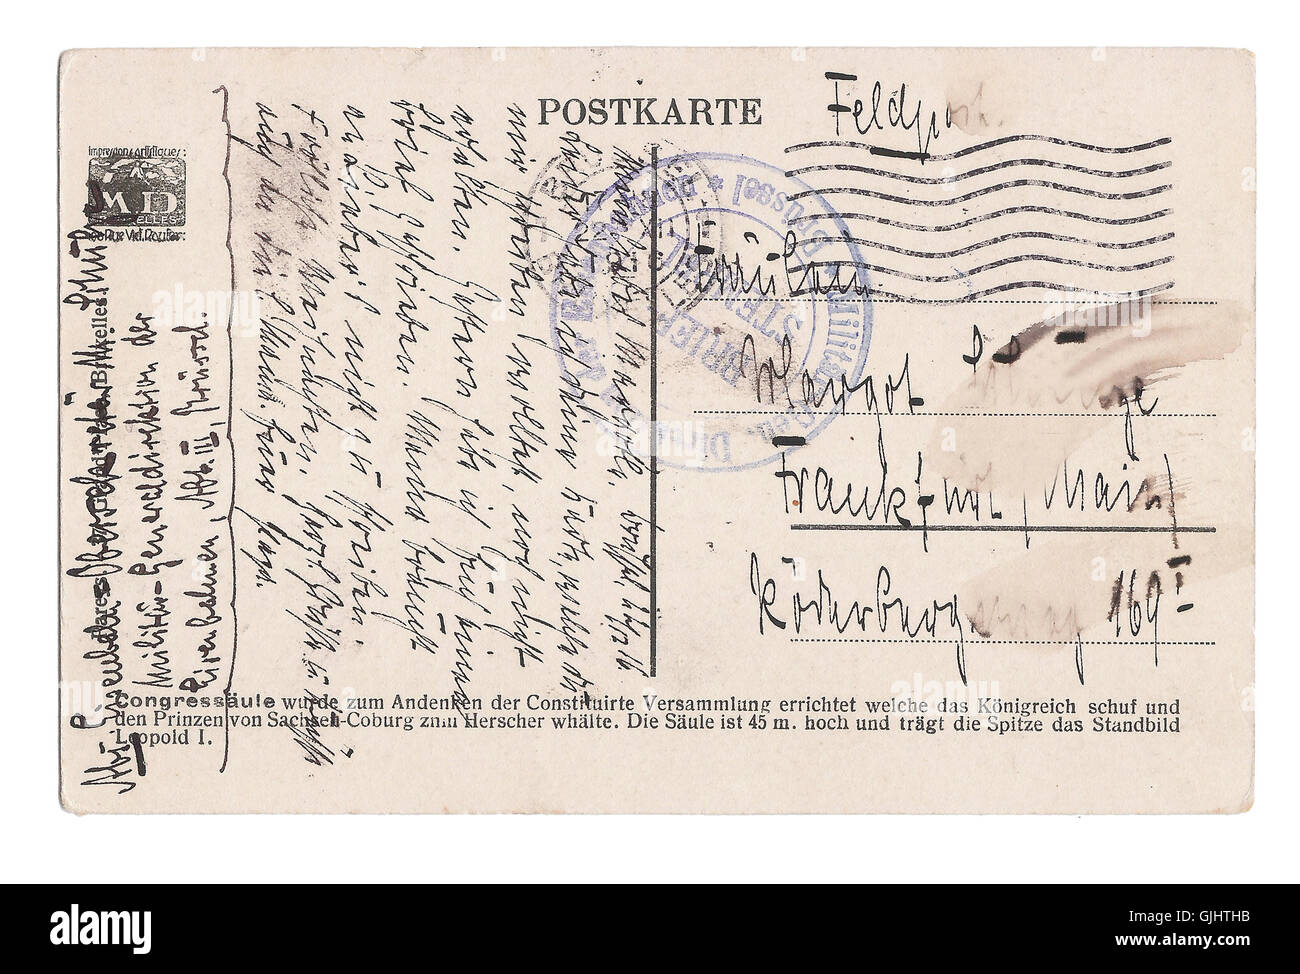 antique vintage written - Stock Image